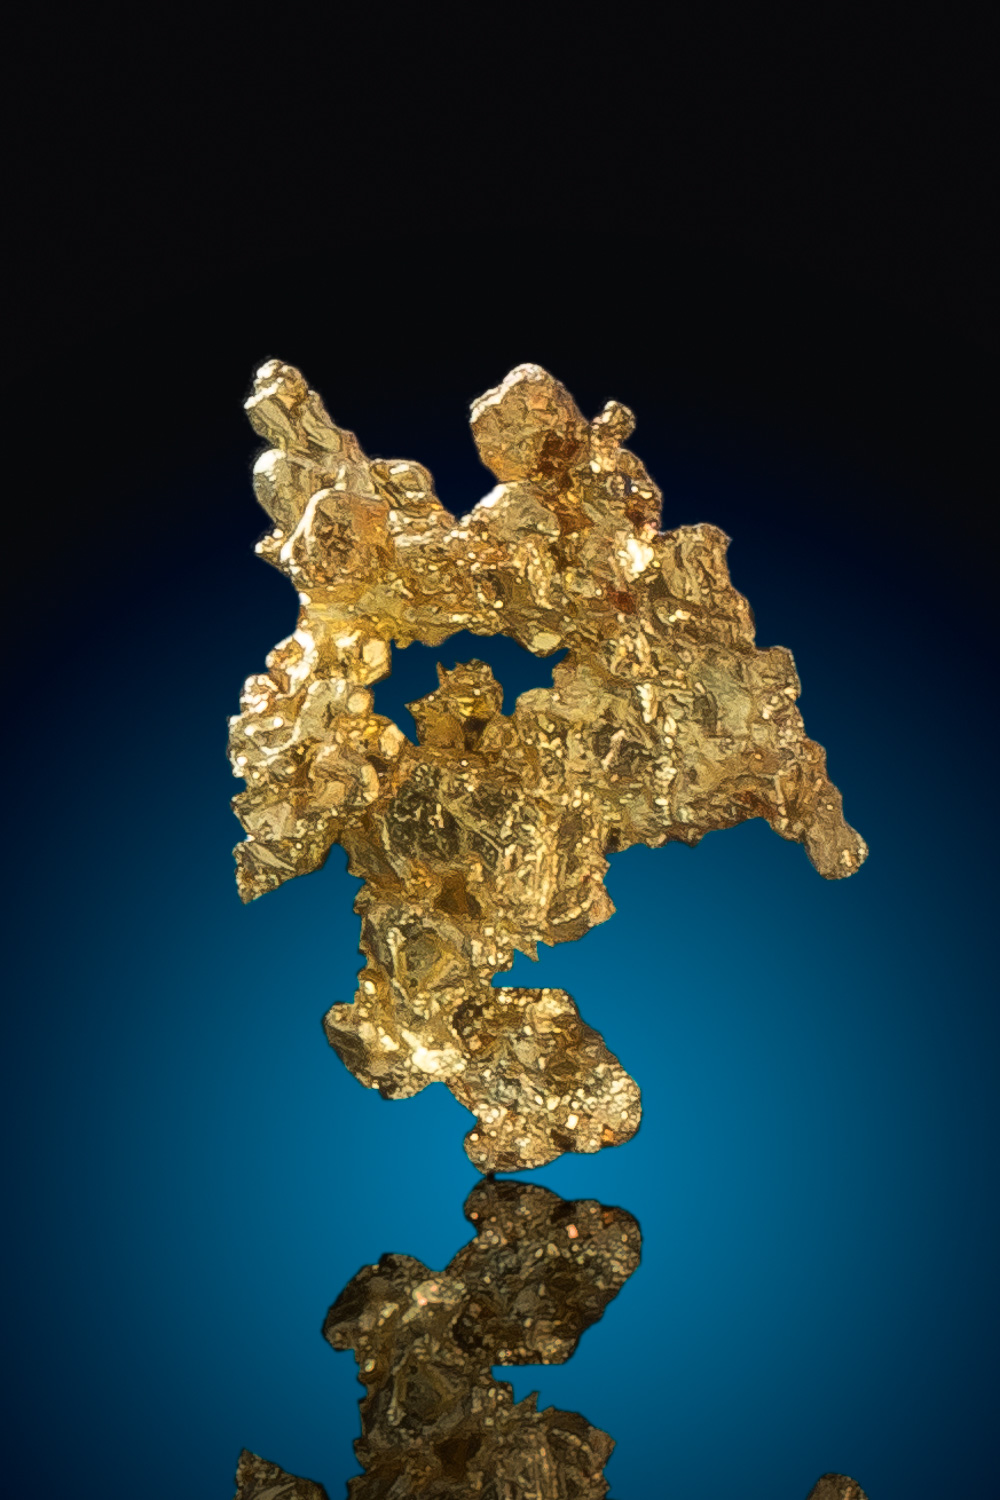 Lacy Crystalline Gold Nugget from the Eagles Nest Gold Mine